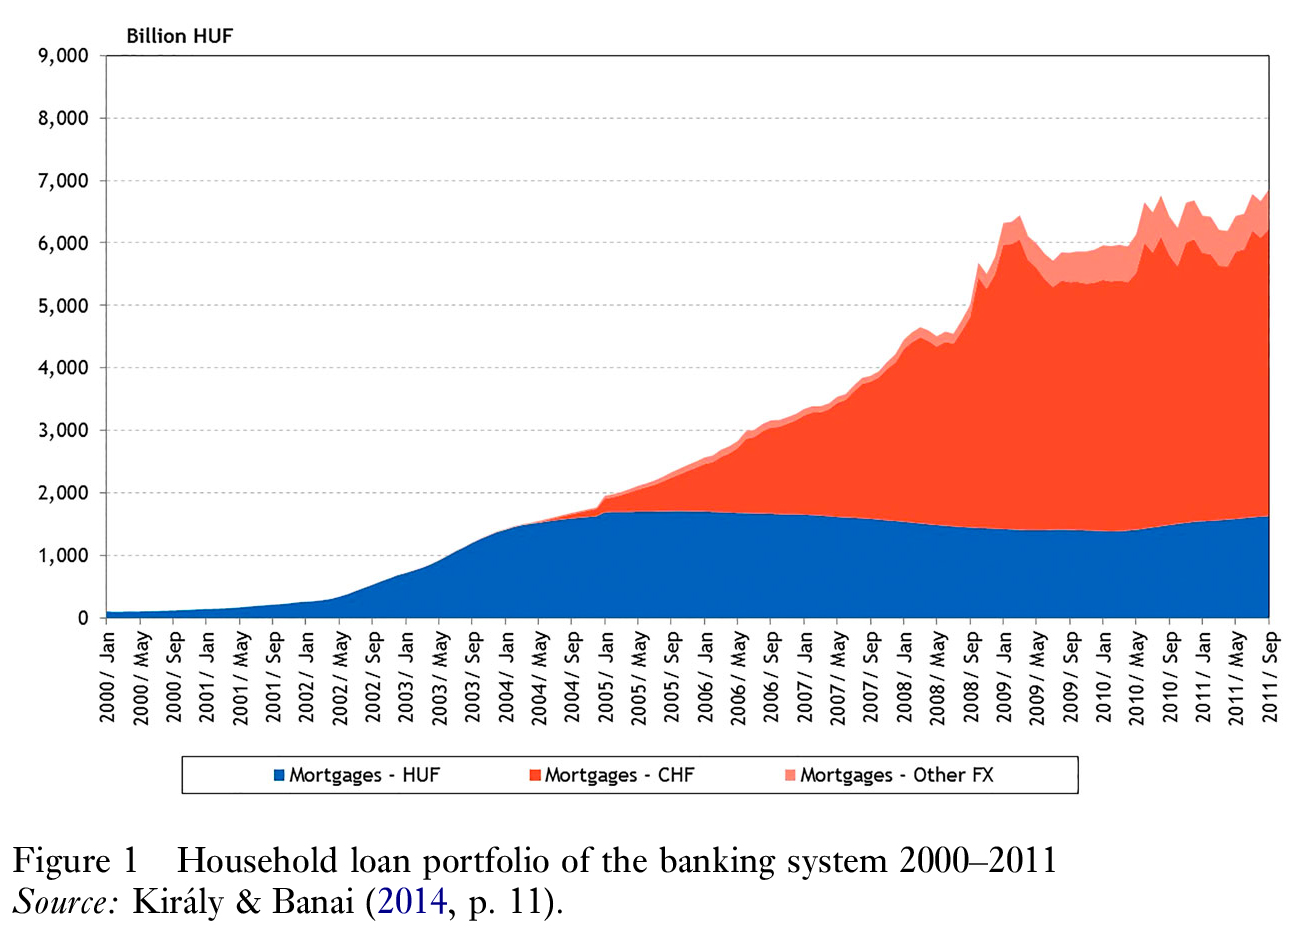 Household loan portfolio evolution